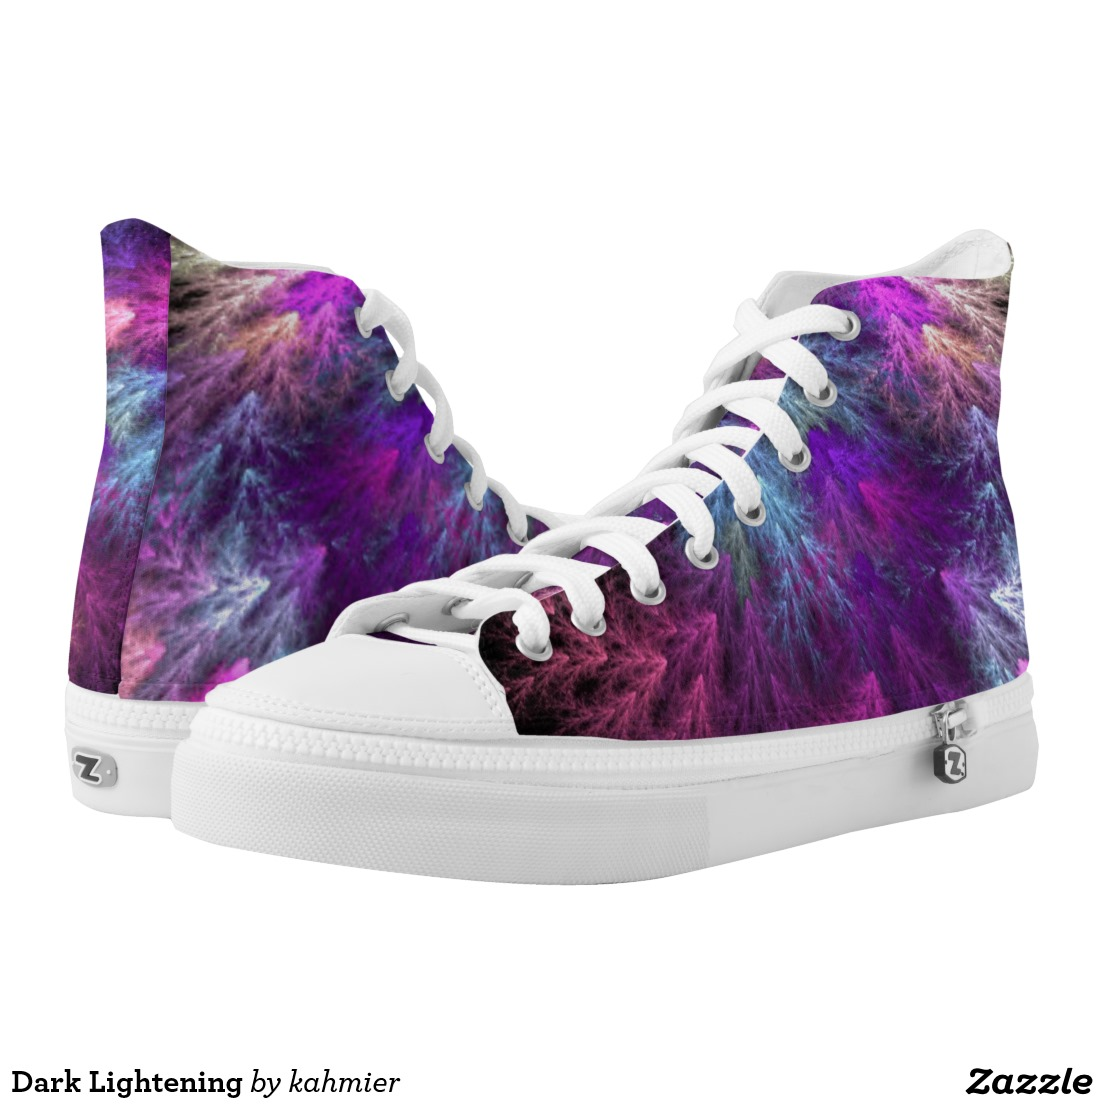 Dark Lightening High-Top Sneakers